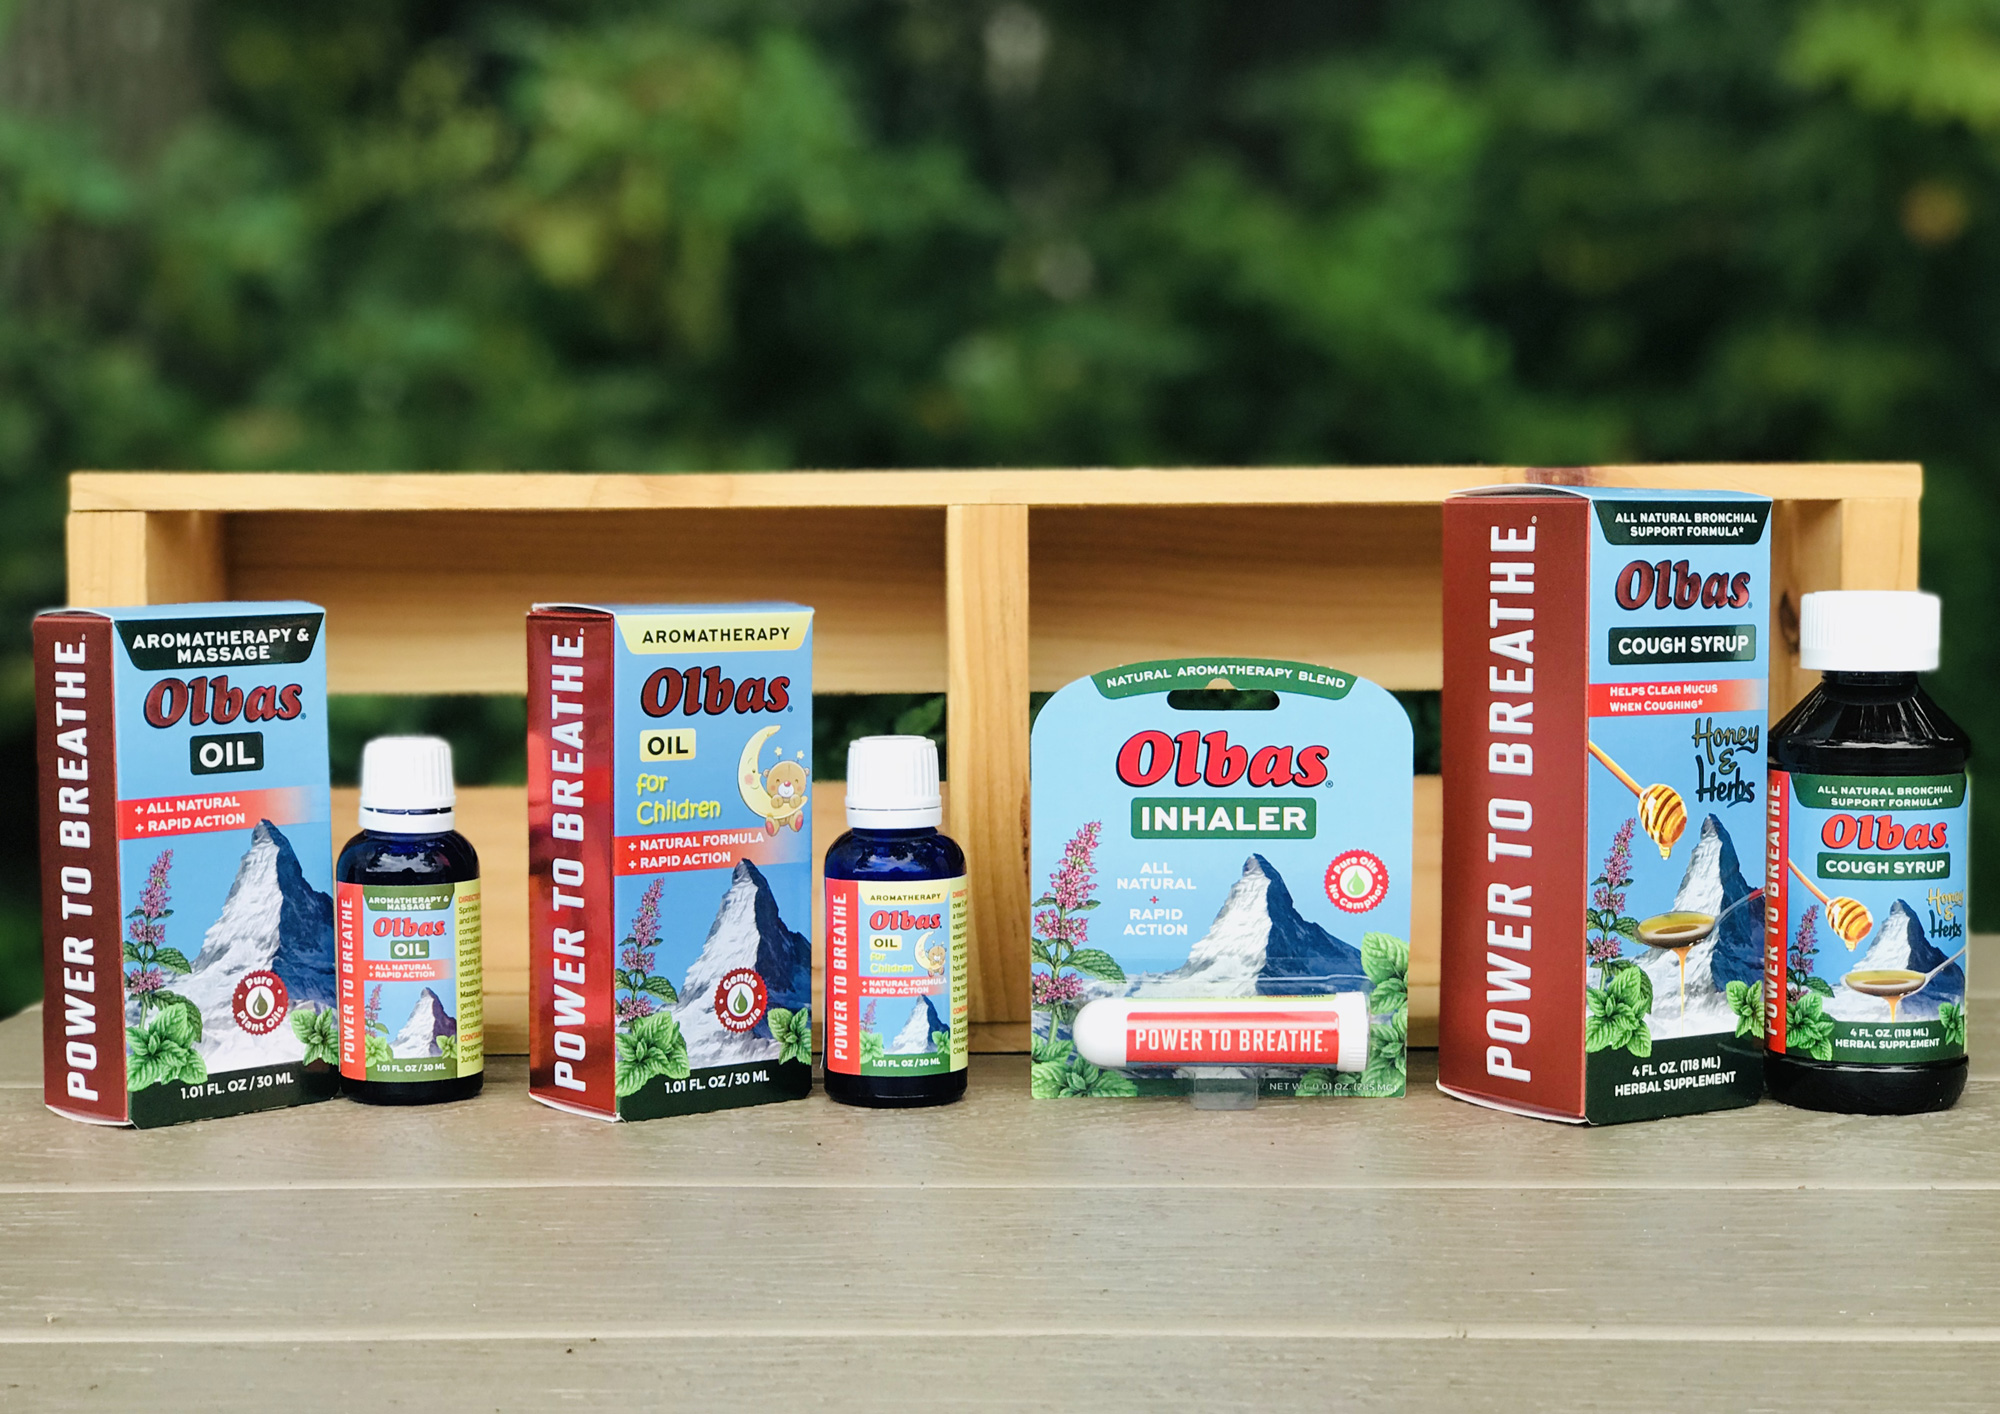 Olbas Remedies Products Lineup